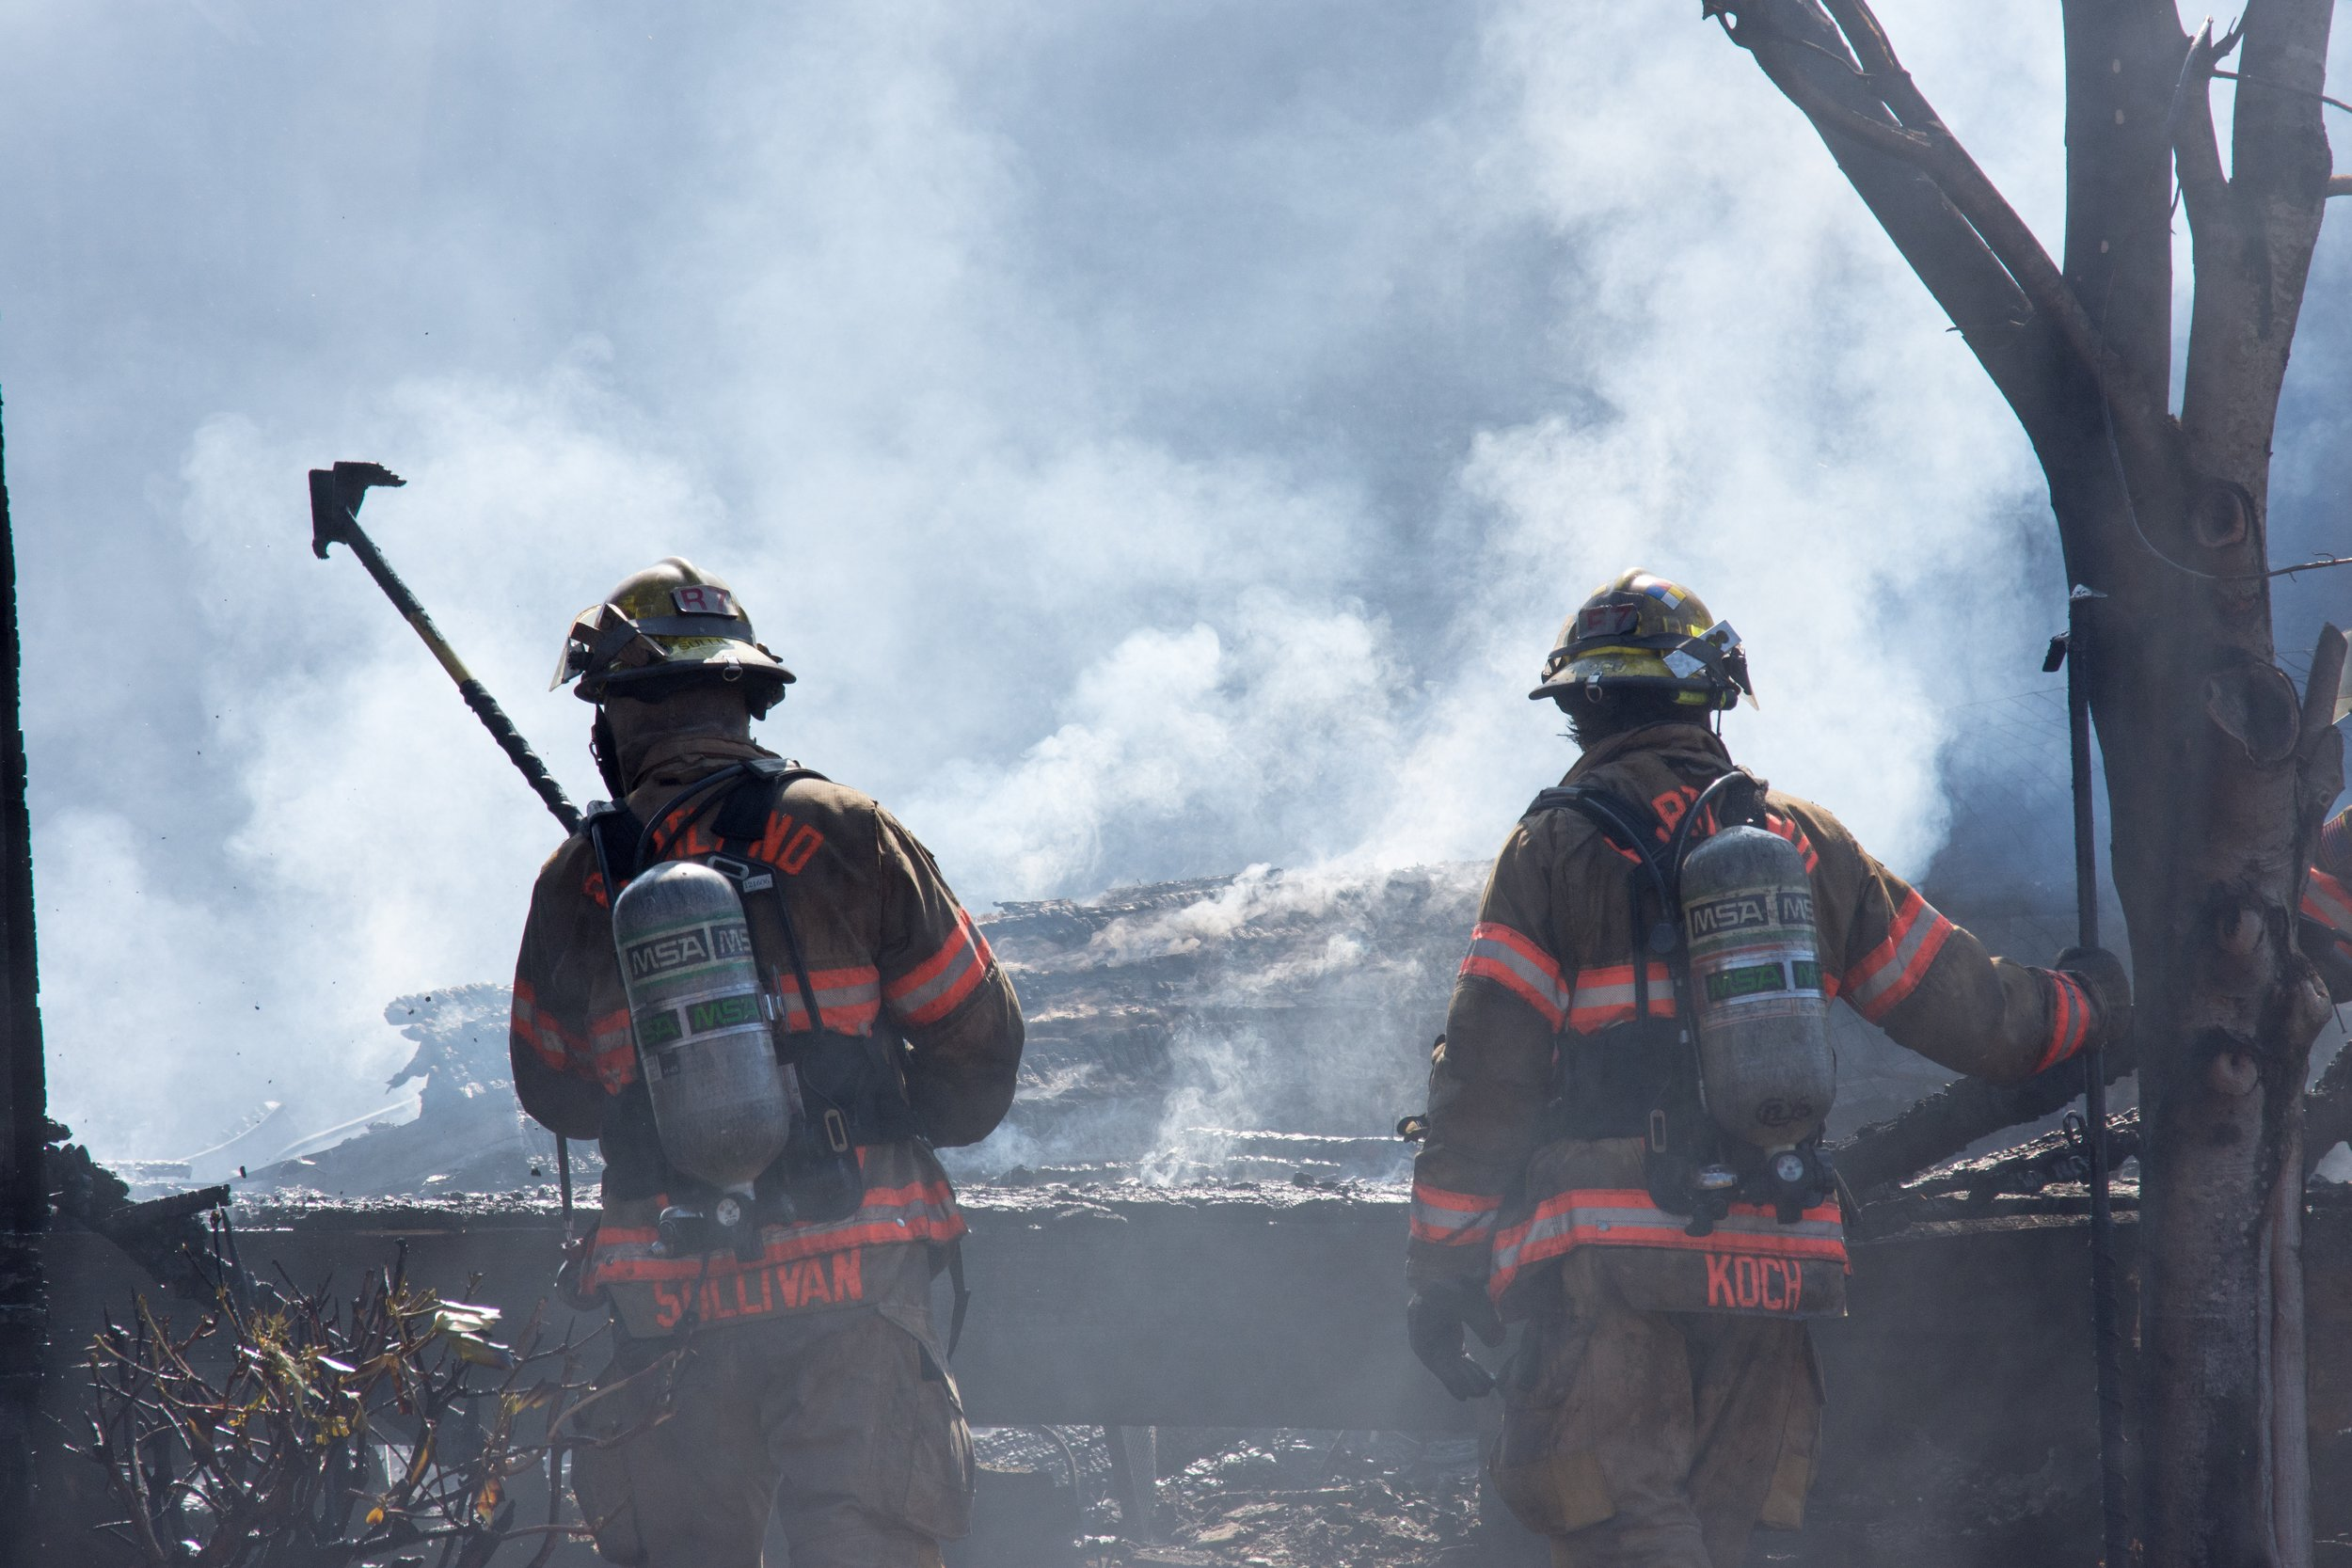 Firefighters monitor hot spots in a blaze. (File Photo, Benjamin Kerensa)